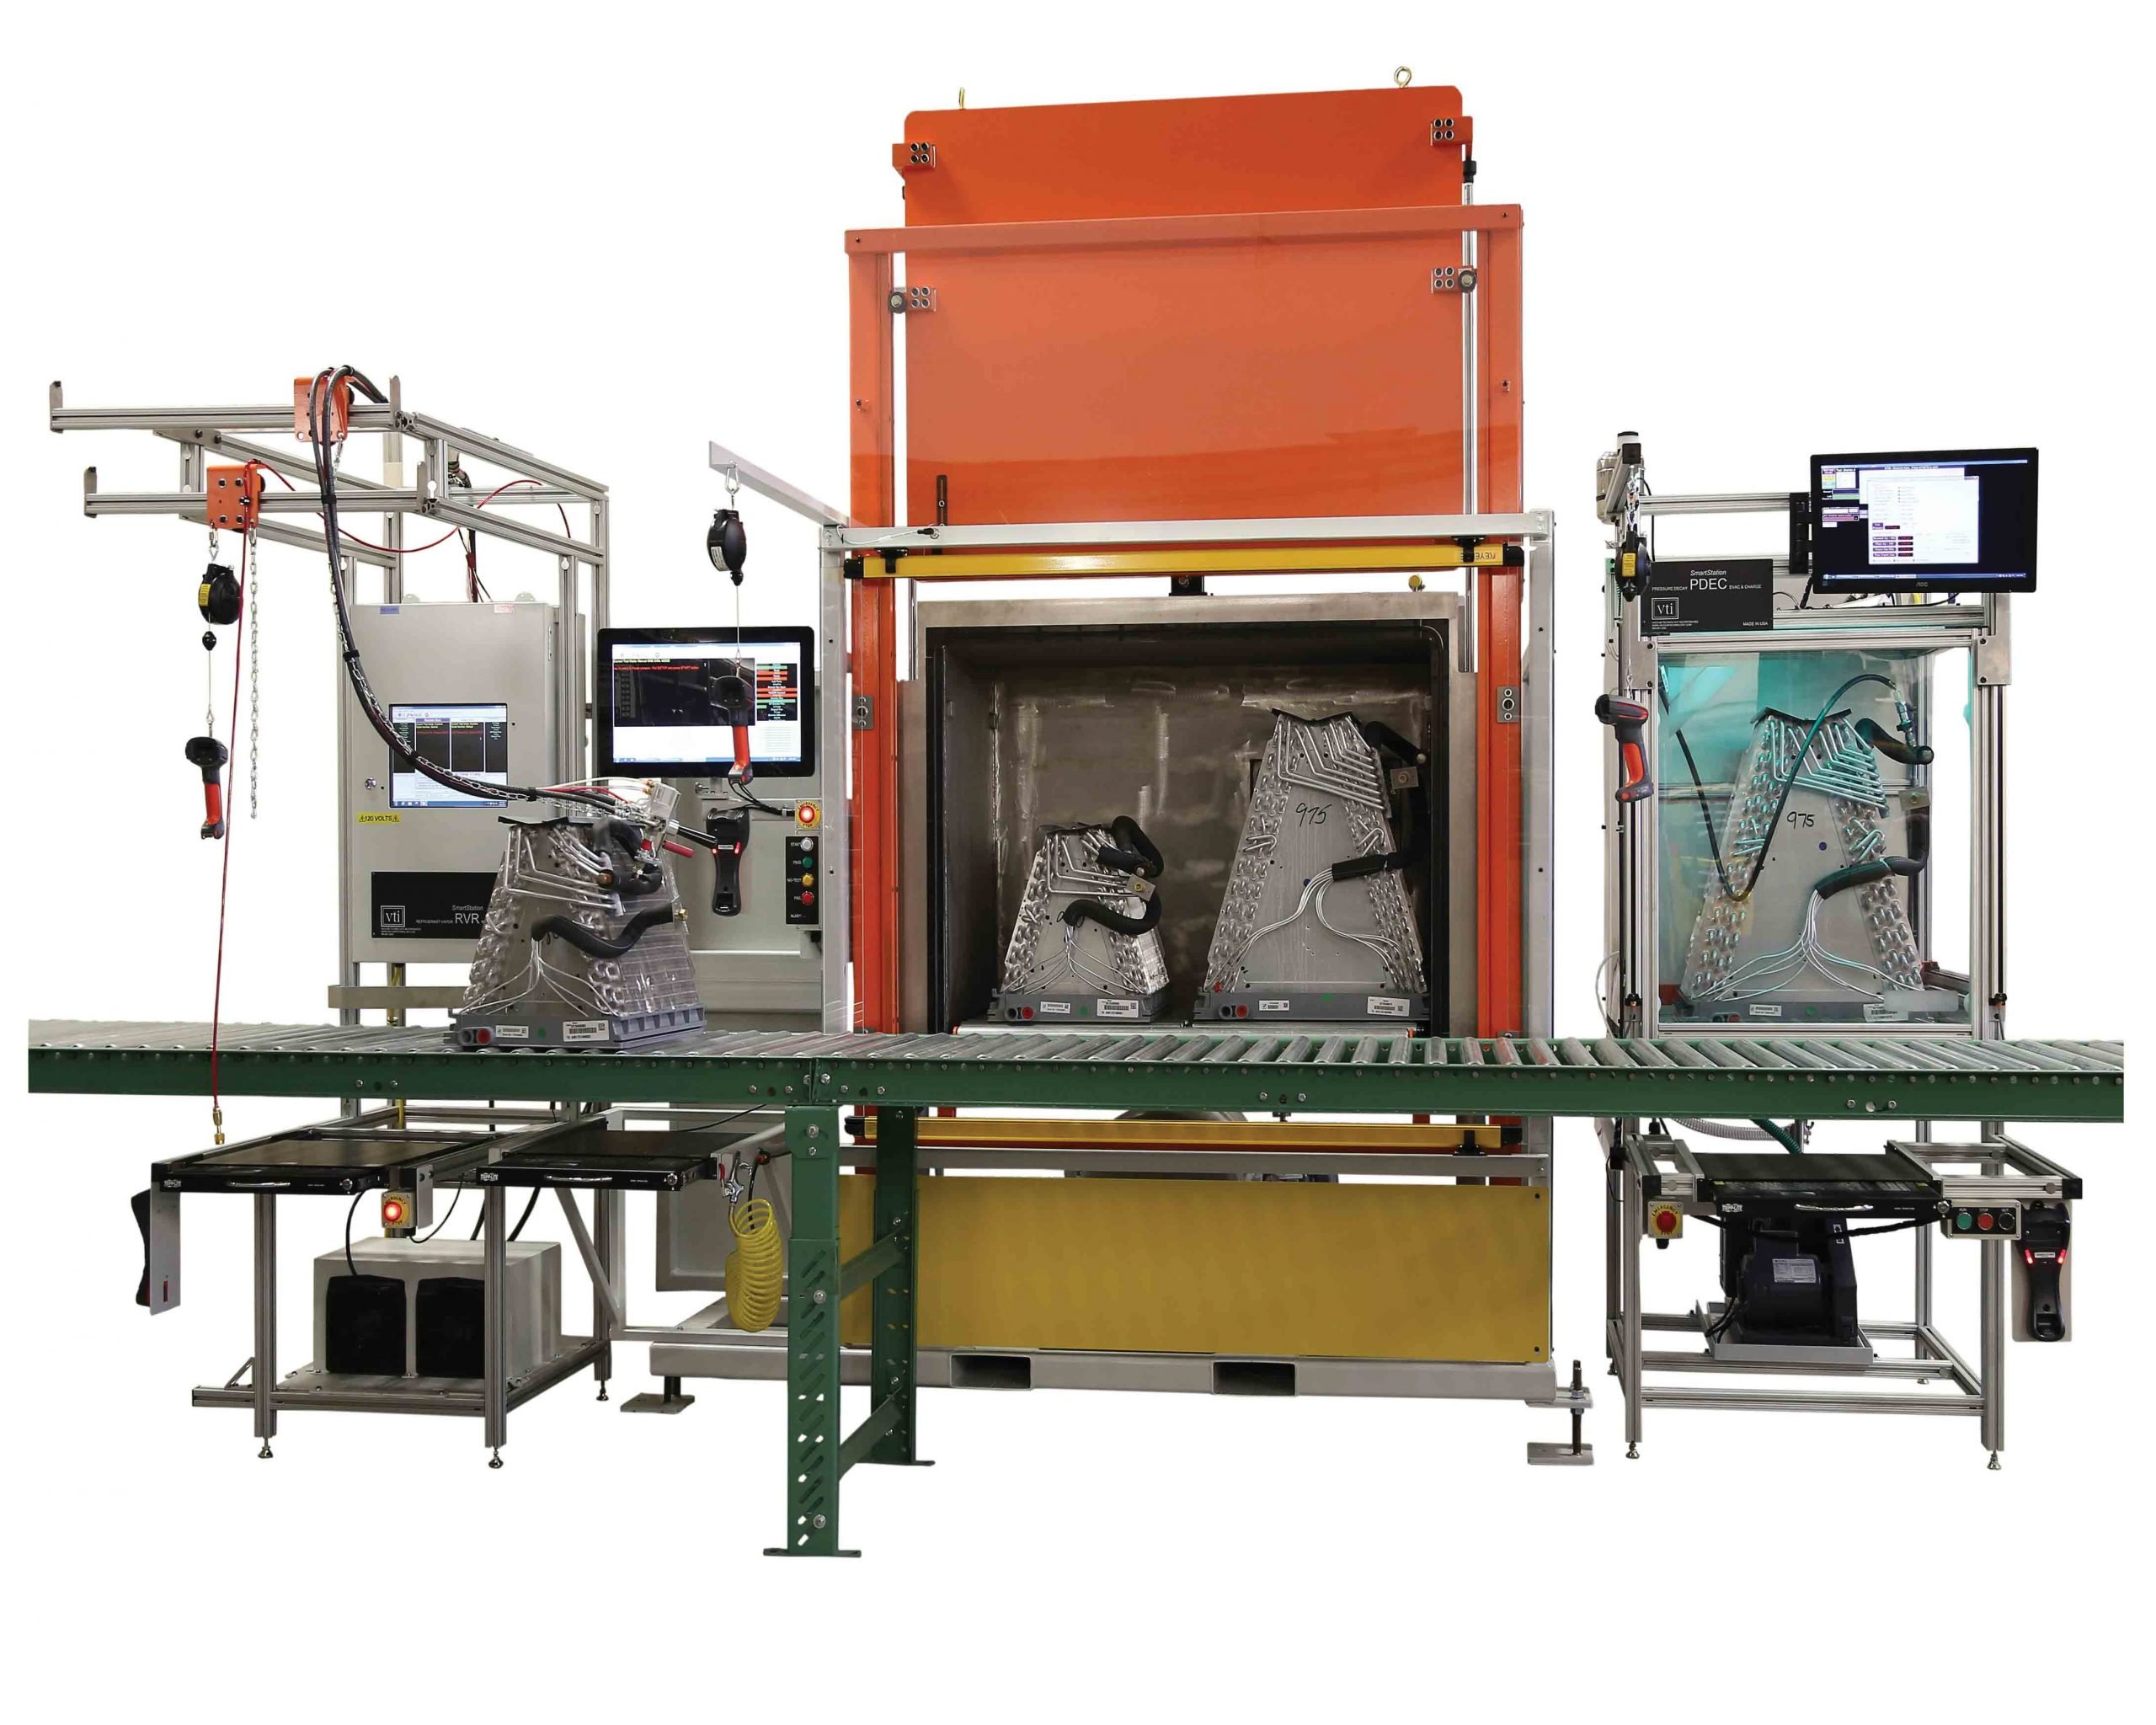 VTI's Typical Residential Indoor Coil Leak Test Equipment for A-Coil Manufacturing